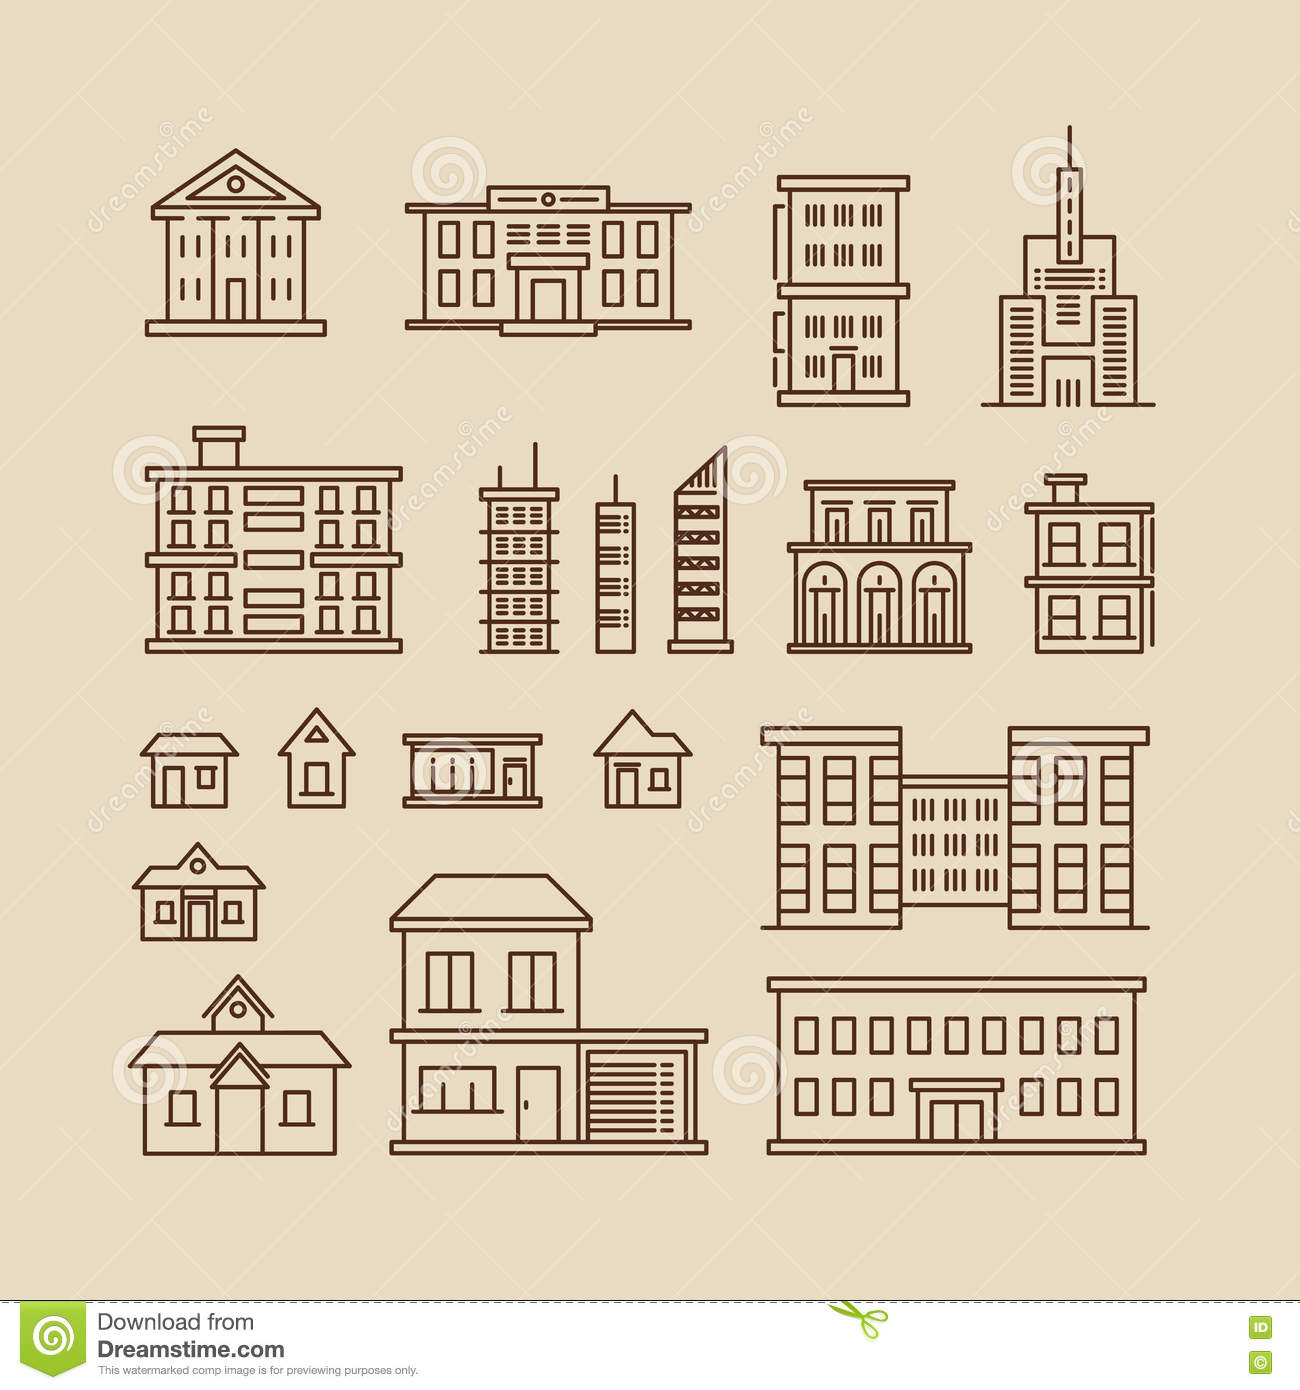 Buildings Line Thin Vector Icons Stock Vector ...